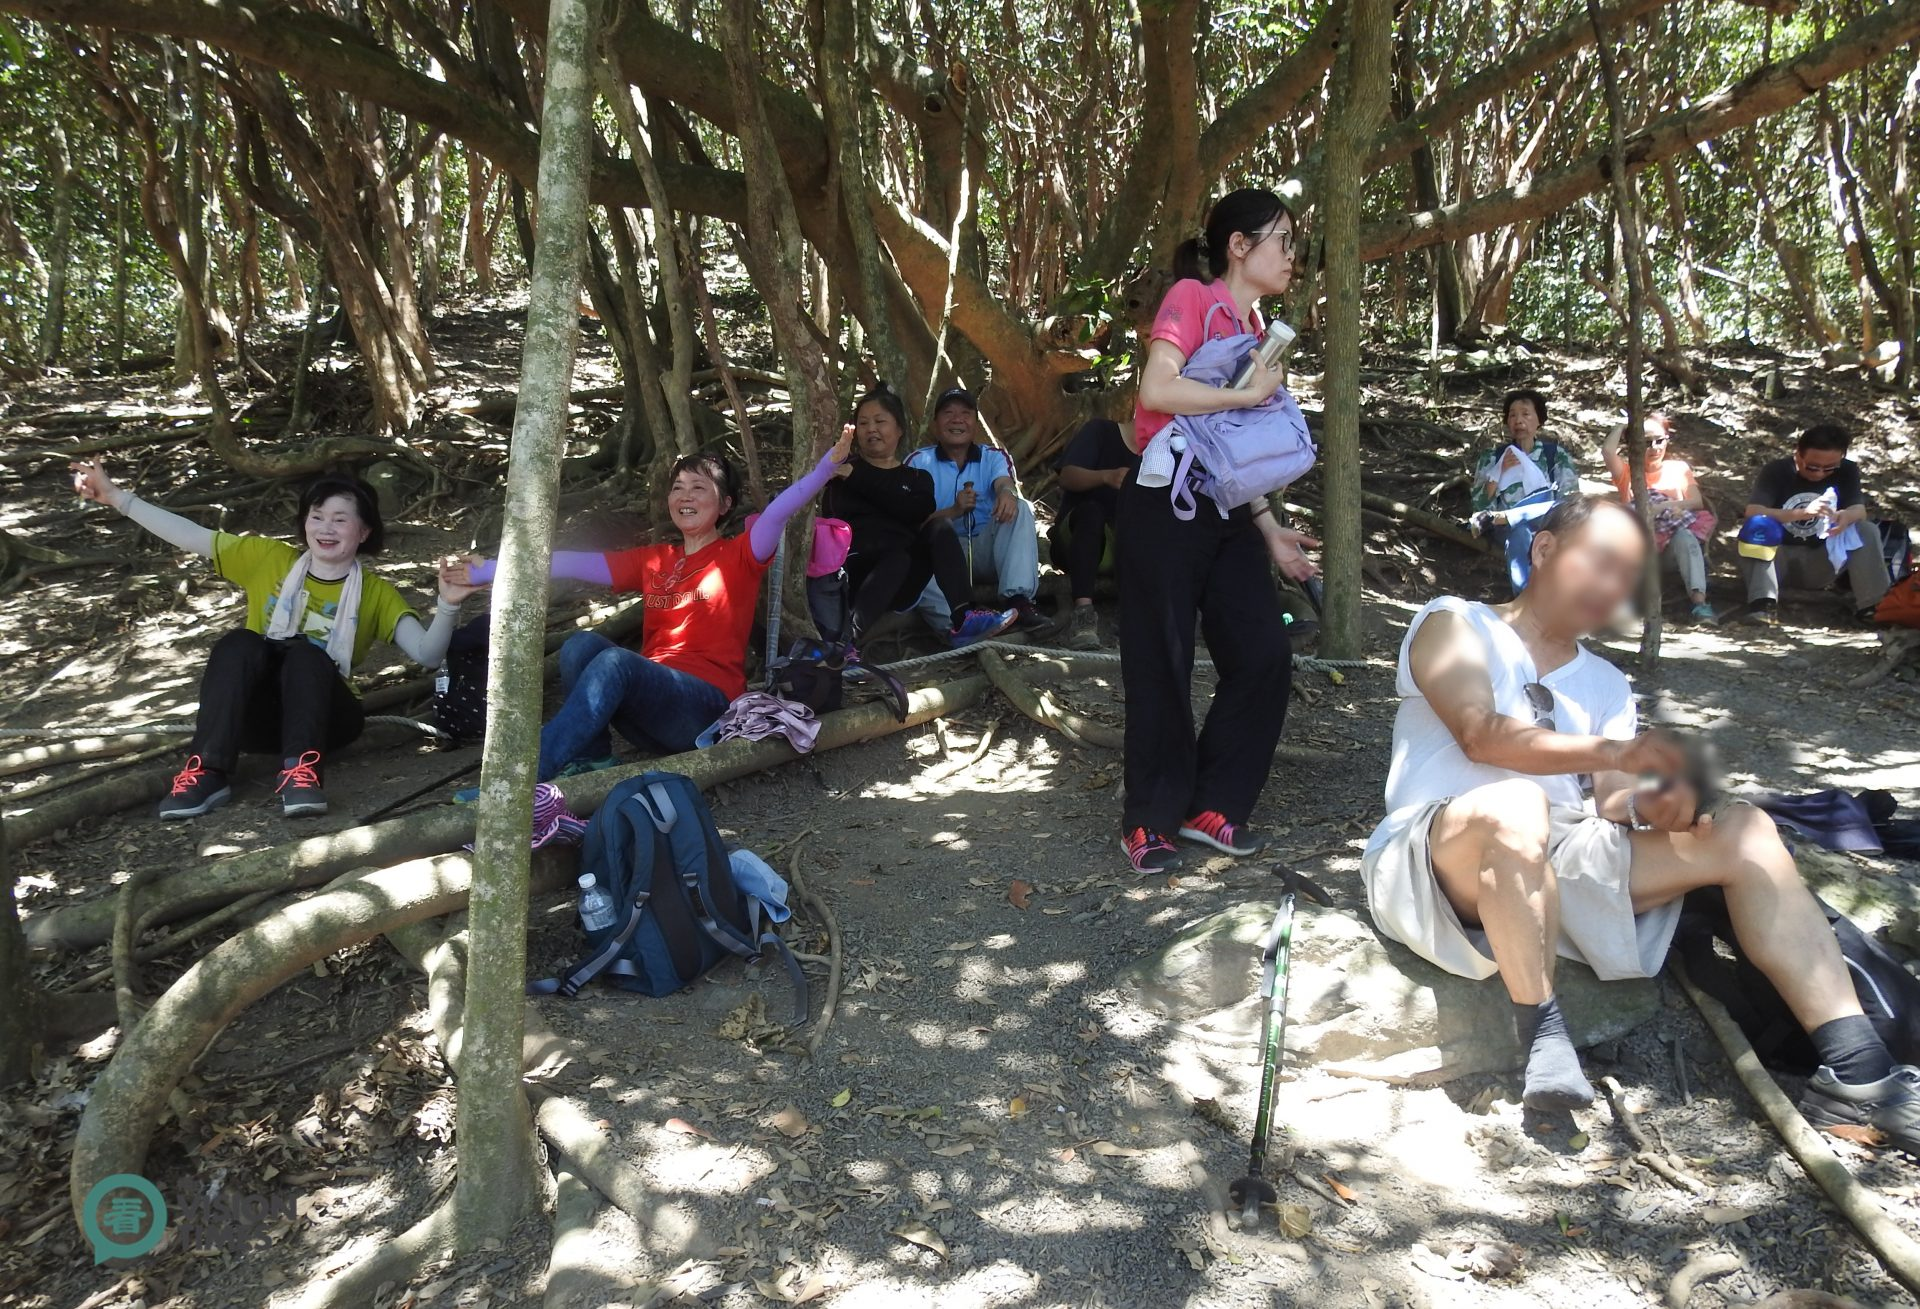 Guanyinbi (觀音鼻) is in the middle of the ancient trail, where hikers can take a rest while overlooking the beautiful Pacific Ocean. (Image: Billy Shyu / Vision Times)